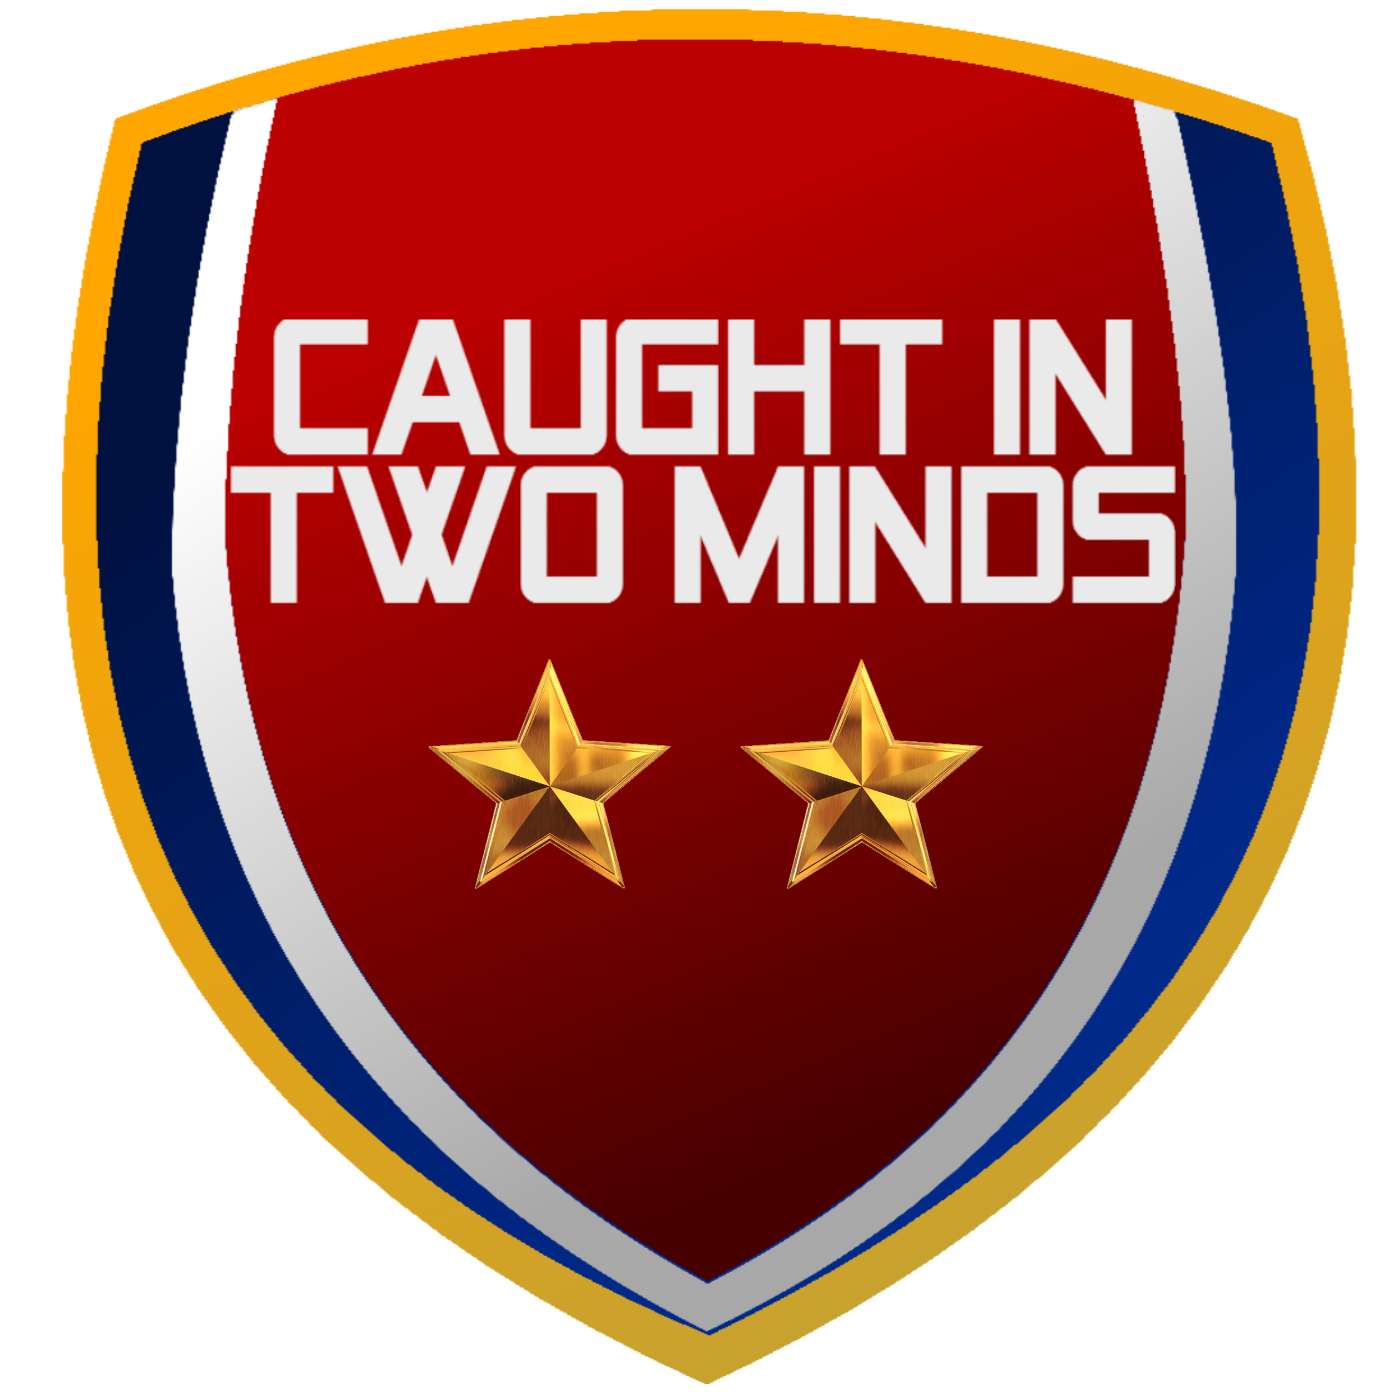 16 - Caught In Two Minds